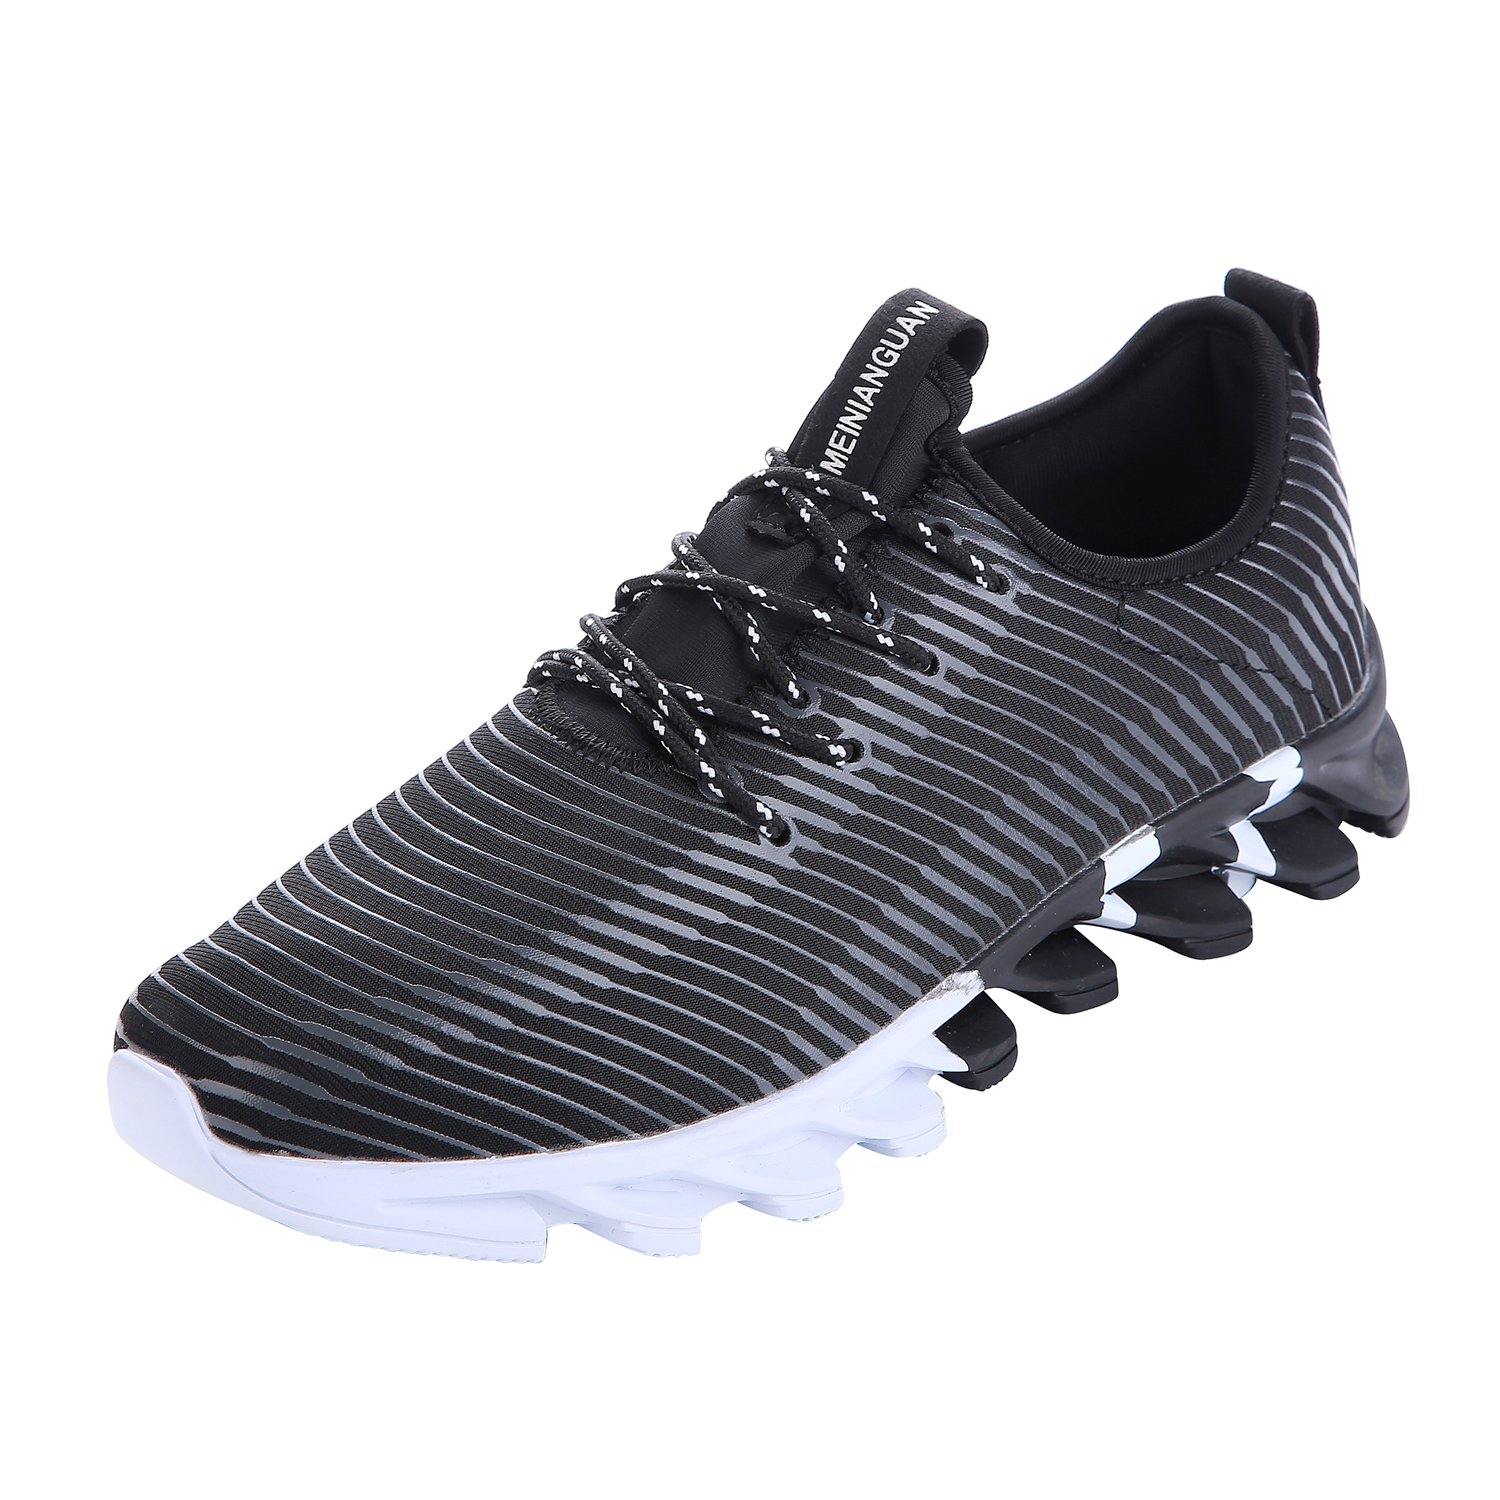 54b8ad54fbb11 NEOKER Homme Chaussure de Sports Running Sneakers Baskets Fitness Noir  39-44 durable service